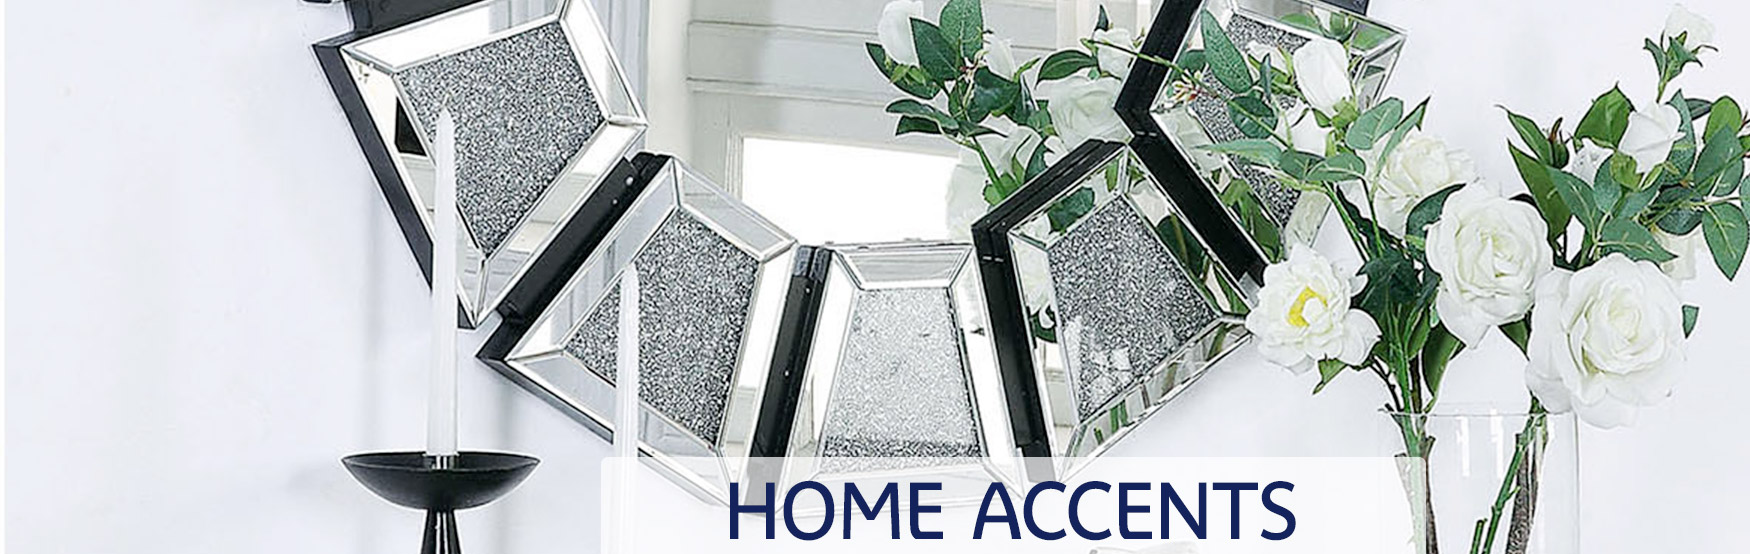 Home Accents Furniture Banner